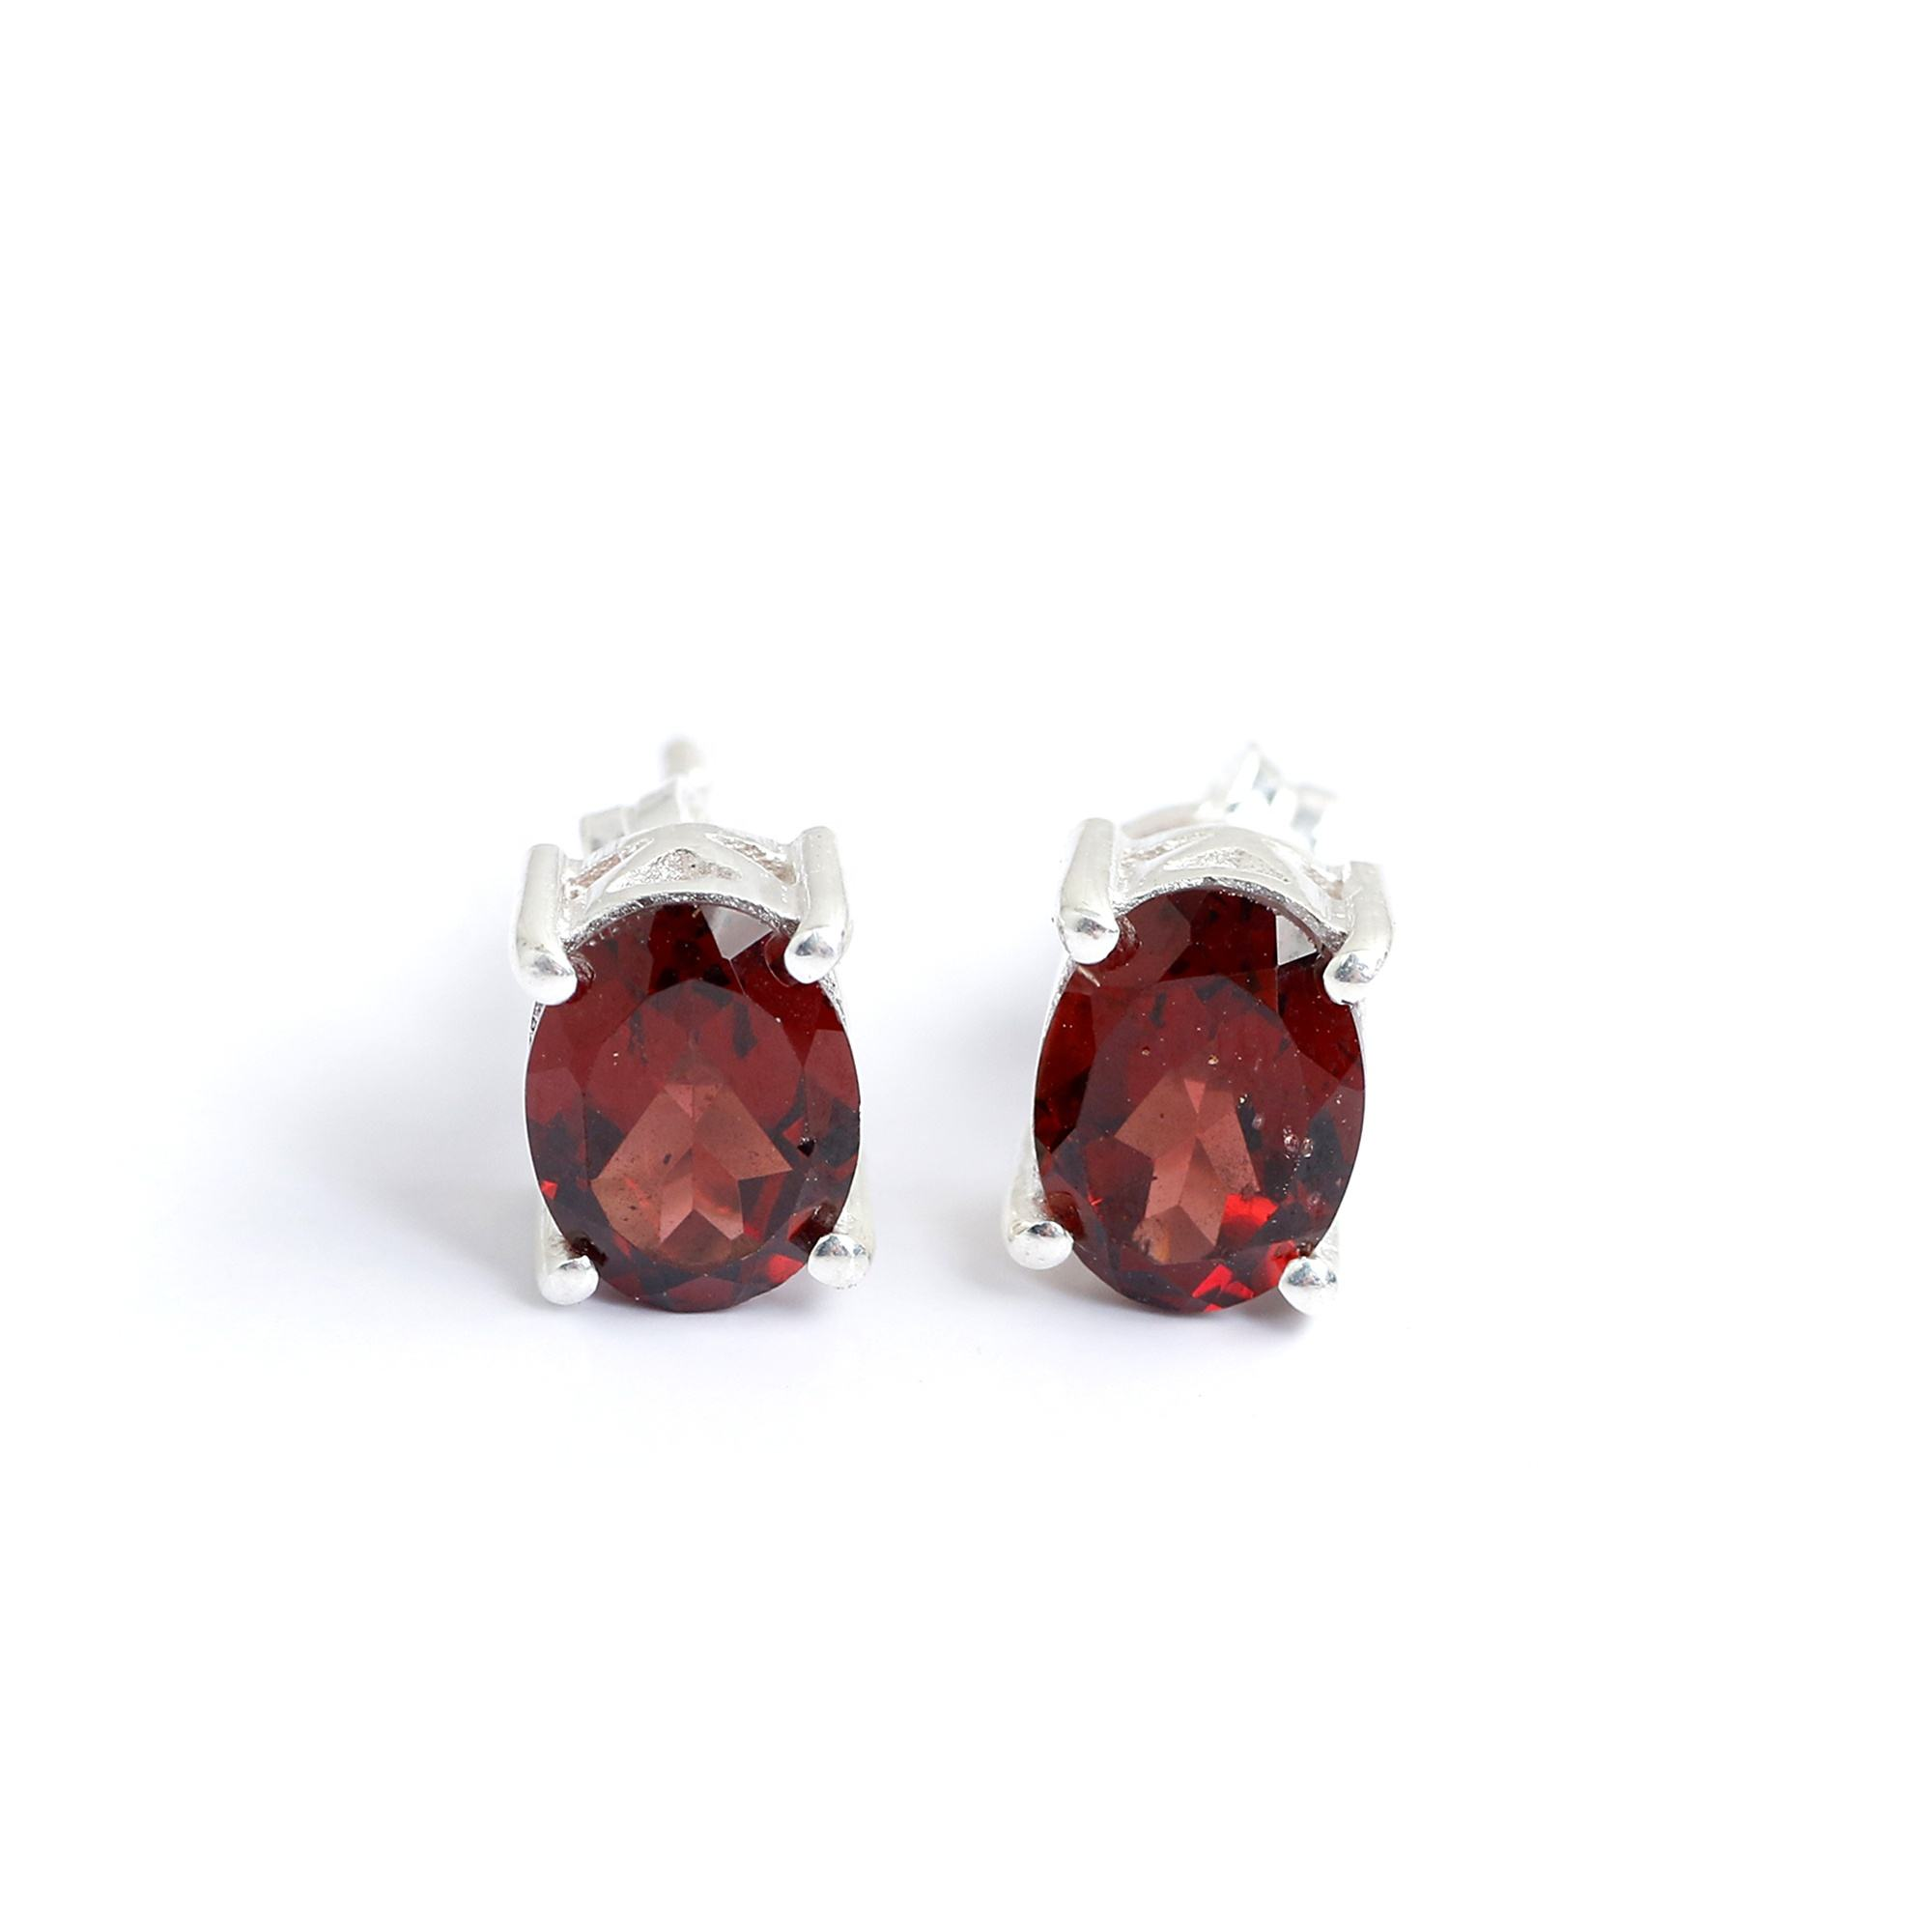 oval shape stud earrings red color garnet gemstone 925 silver jewelry rhodium plated stud earrings for her